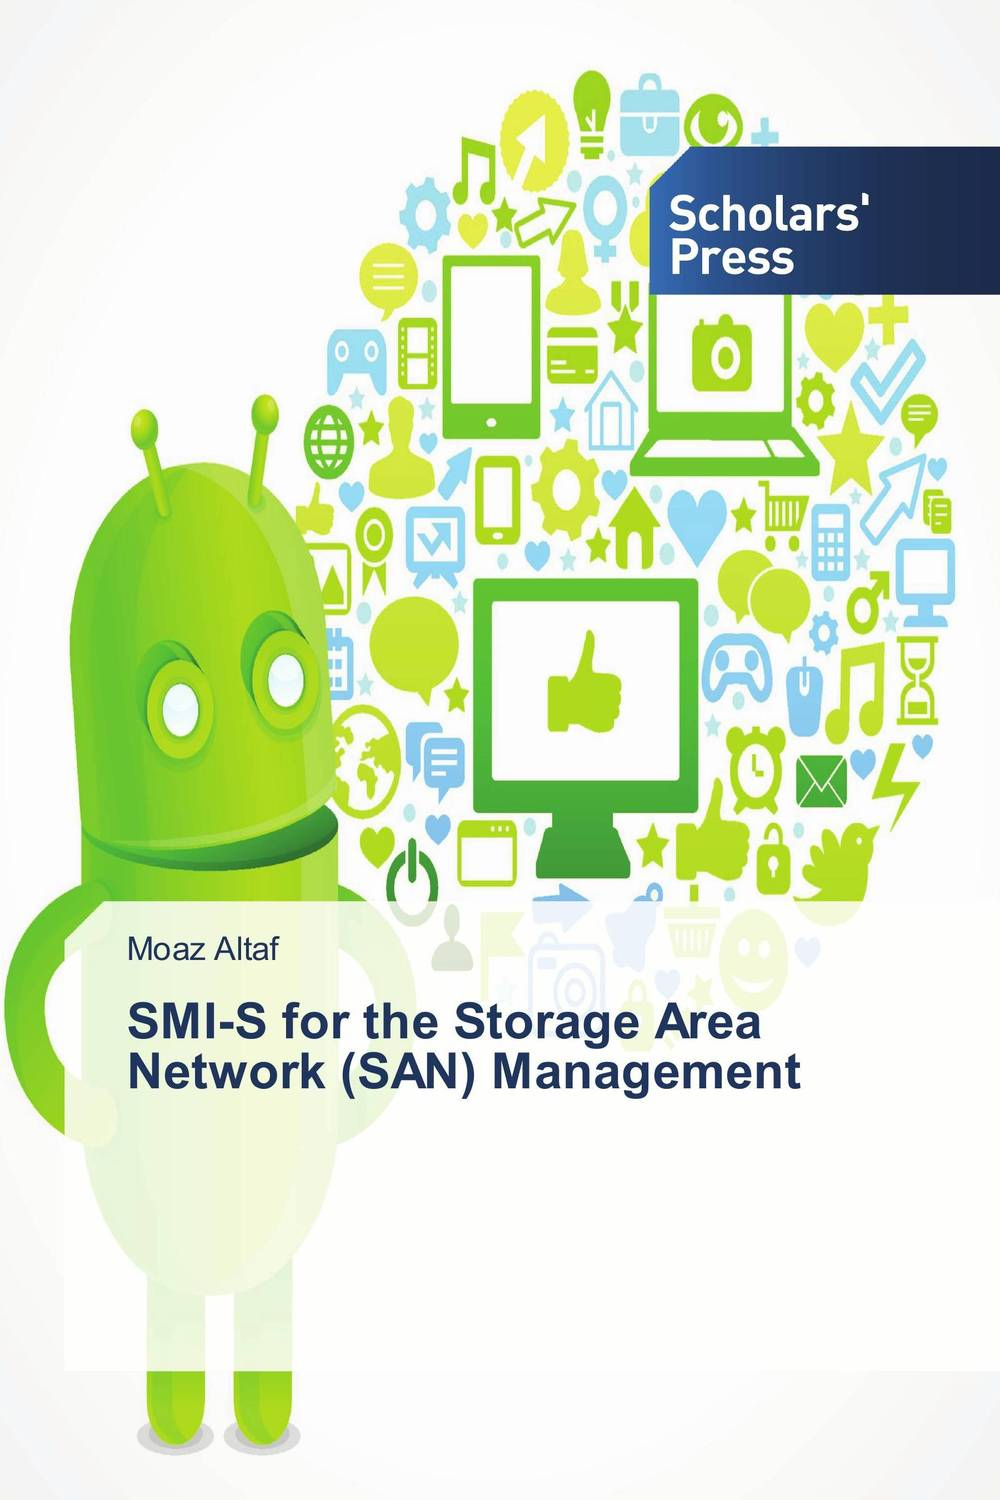 SMI-S for the Storage Area Network (SAN) Management stephen denning the leader s guide to radical management reinventing the workplace for the 21st century